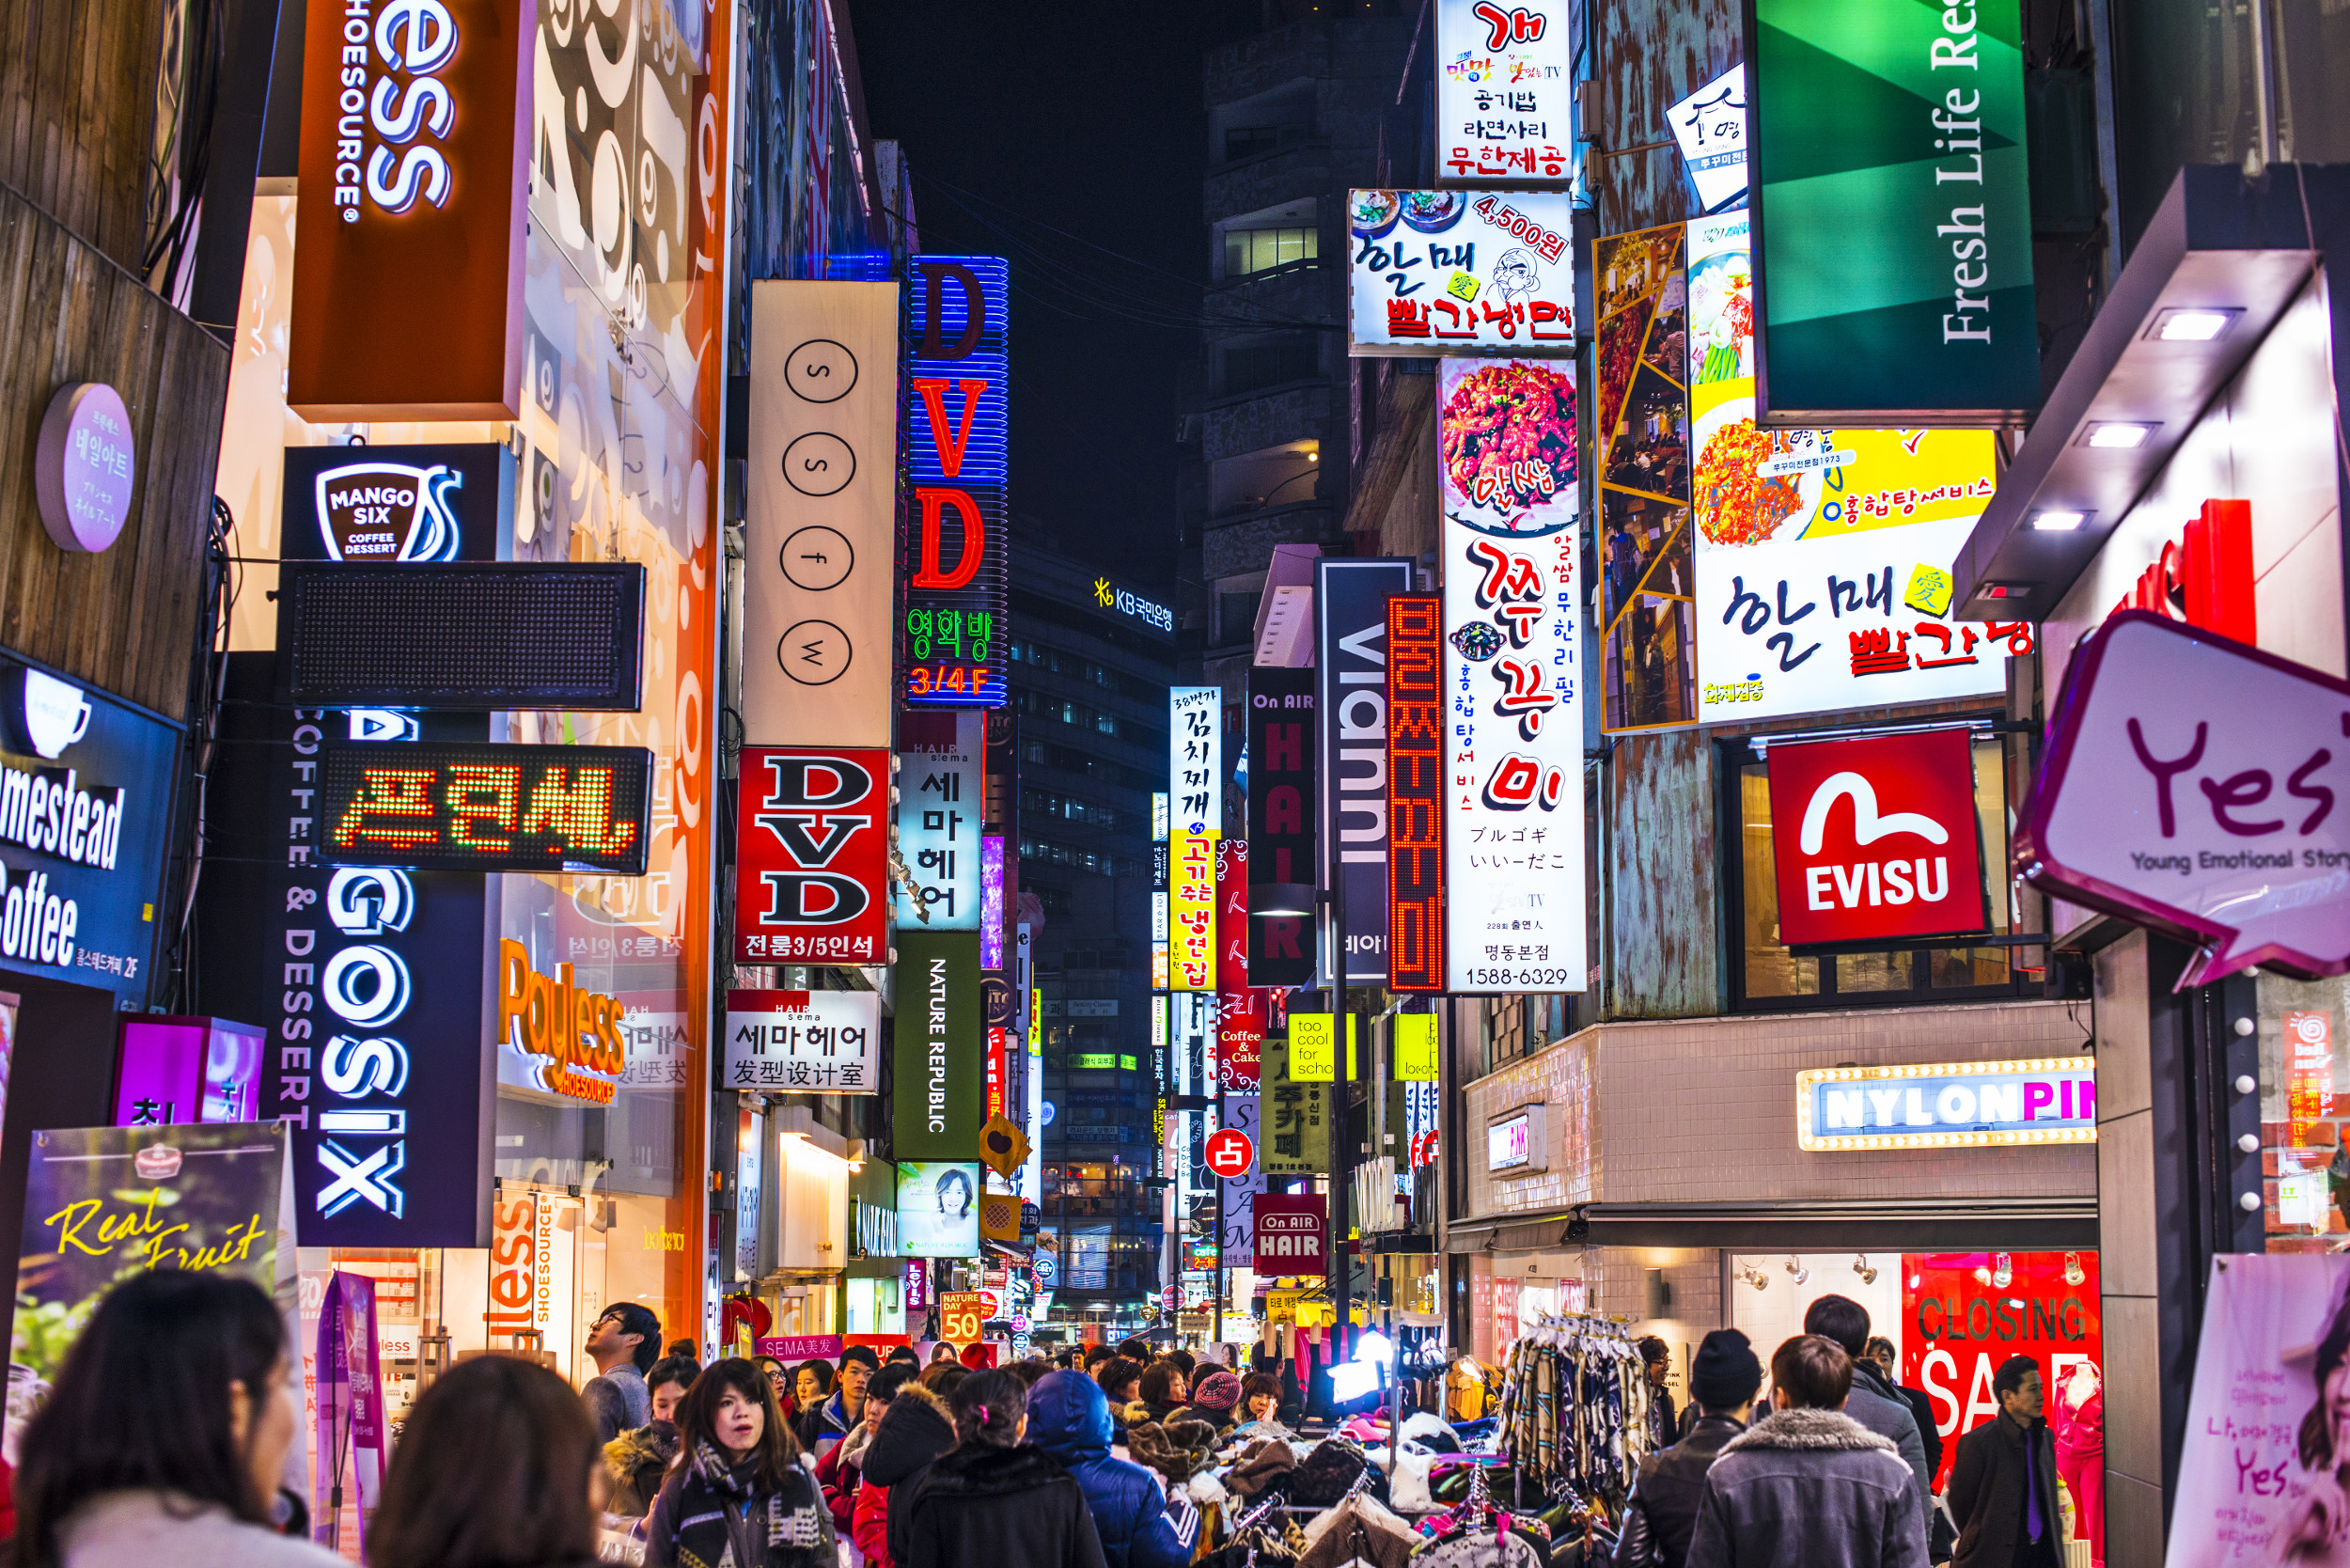 Seoul was included in the list as one of the top 10 beer destinations for 2018.